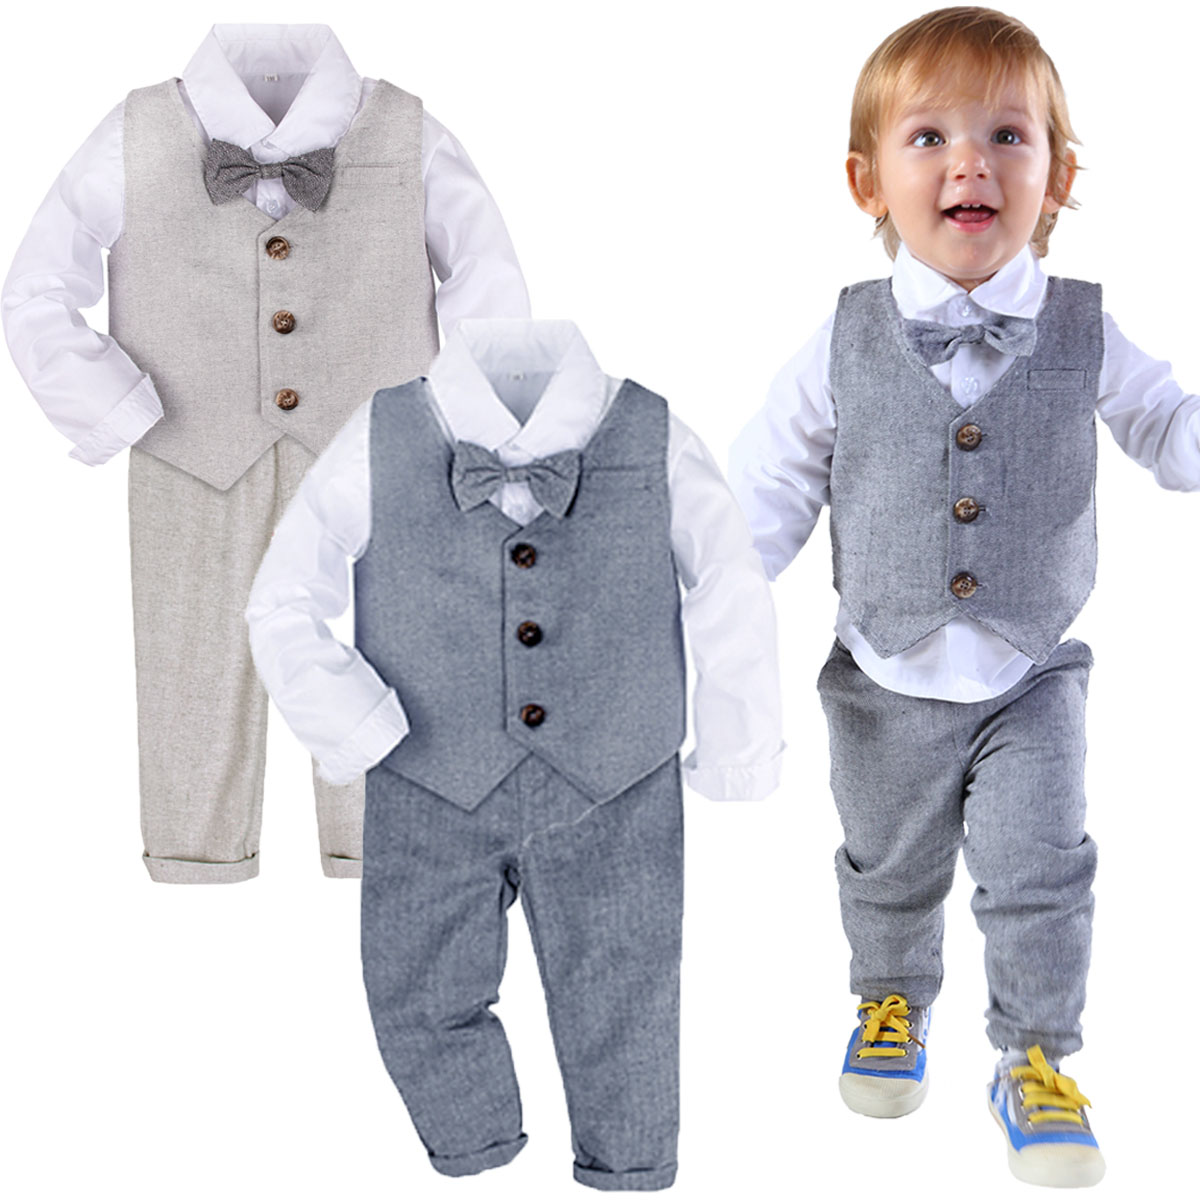 Baby Formal Suit Toddler Wedding Tuxedo Infant Gentleman Baptism Birthday Party Outfit Winter Long Sleeve Outwear 3PCS